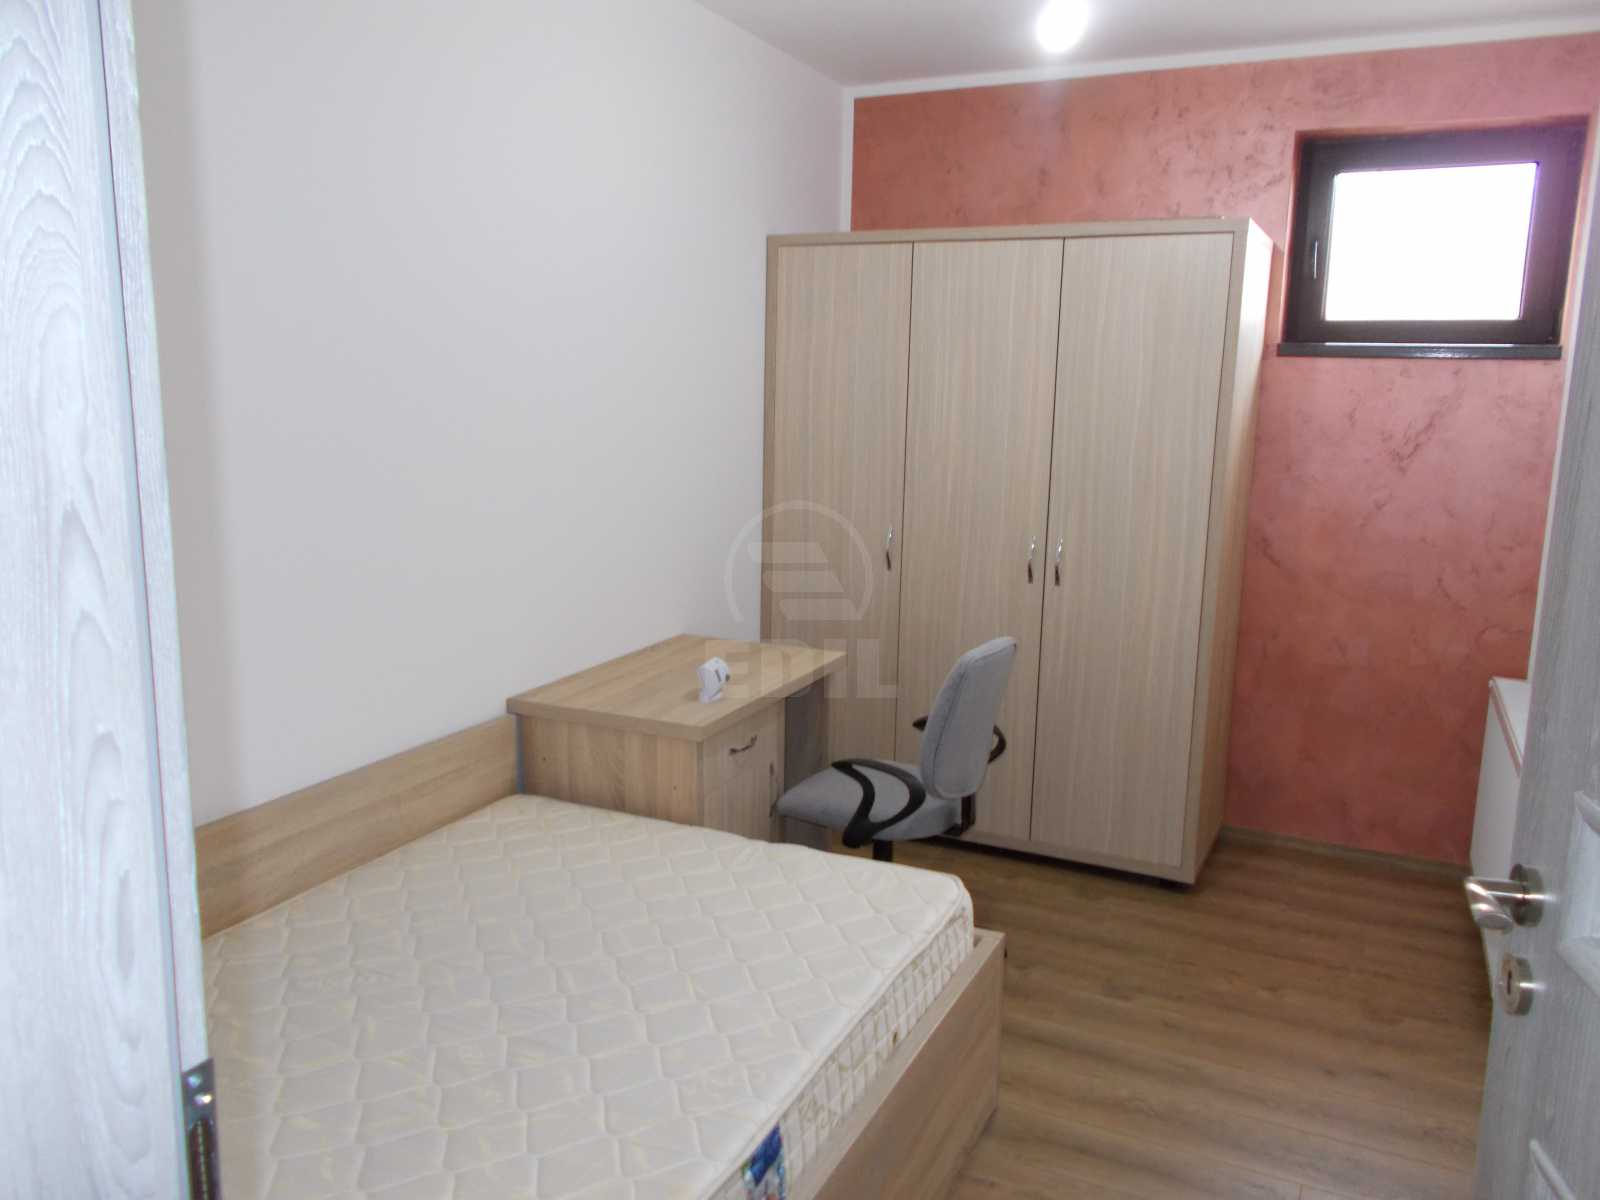 Apartment for rent 2 rooms, APCJ284574-6